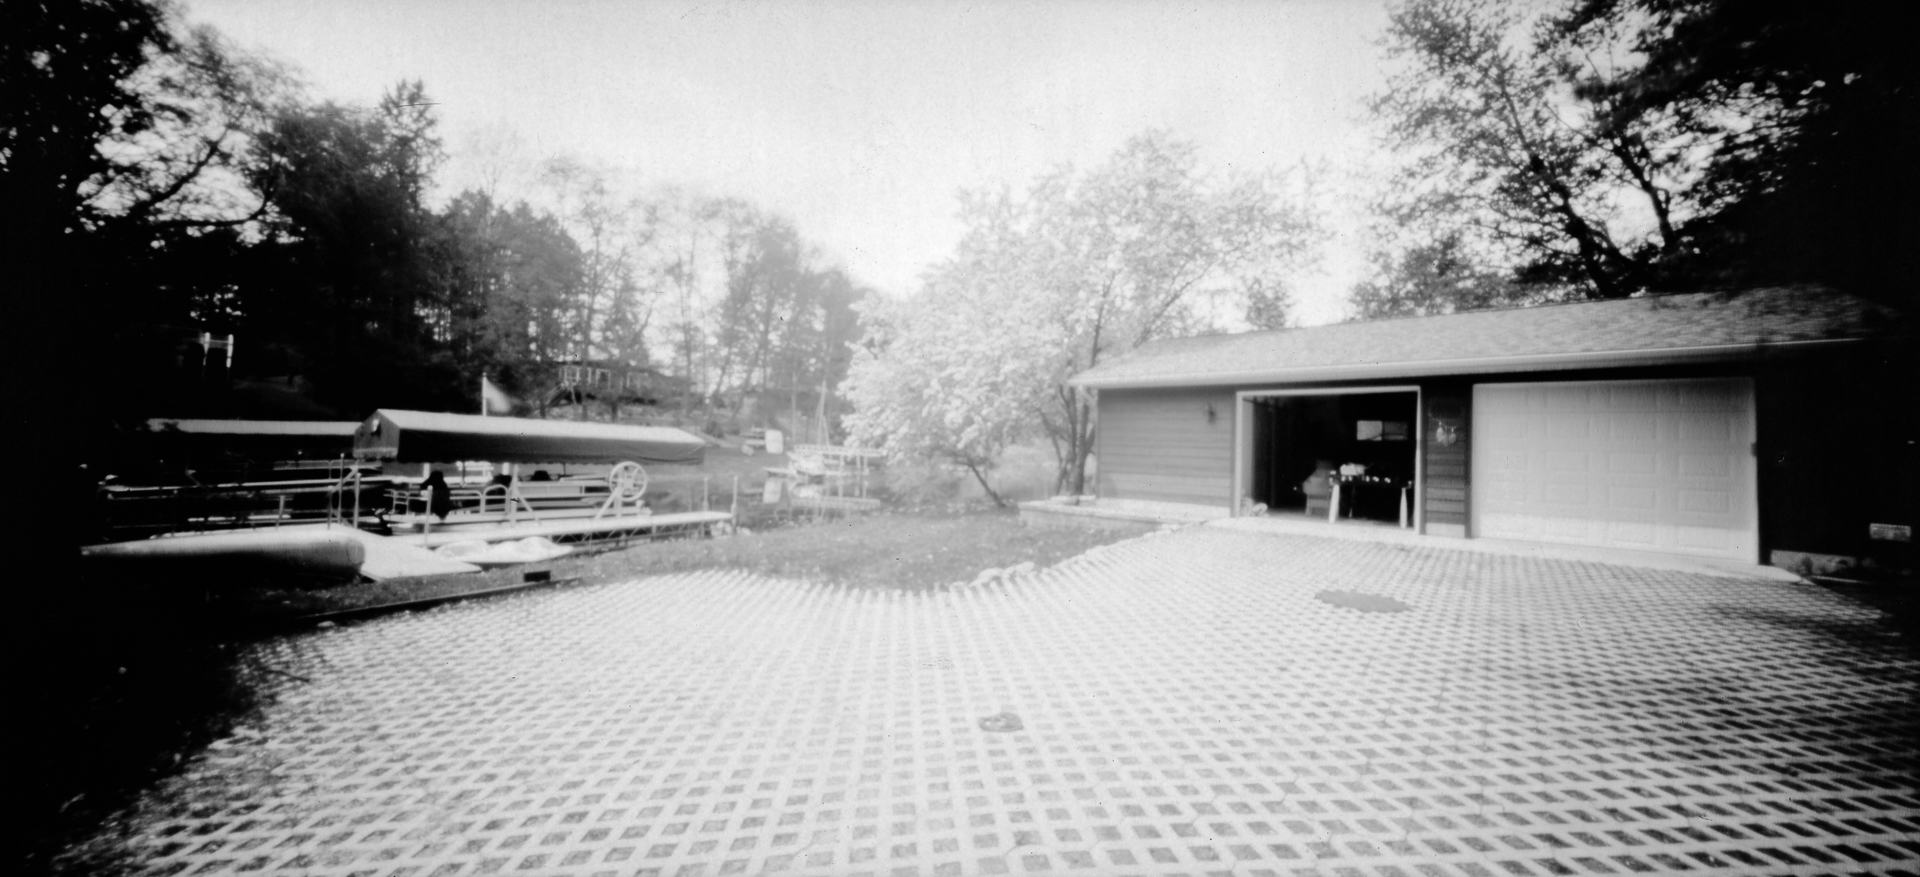 2020-05-24 - Pontoon and Garage - Taken with Holga Wide Pinhole Camera and on Seagull VC-FB pa...jpg